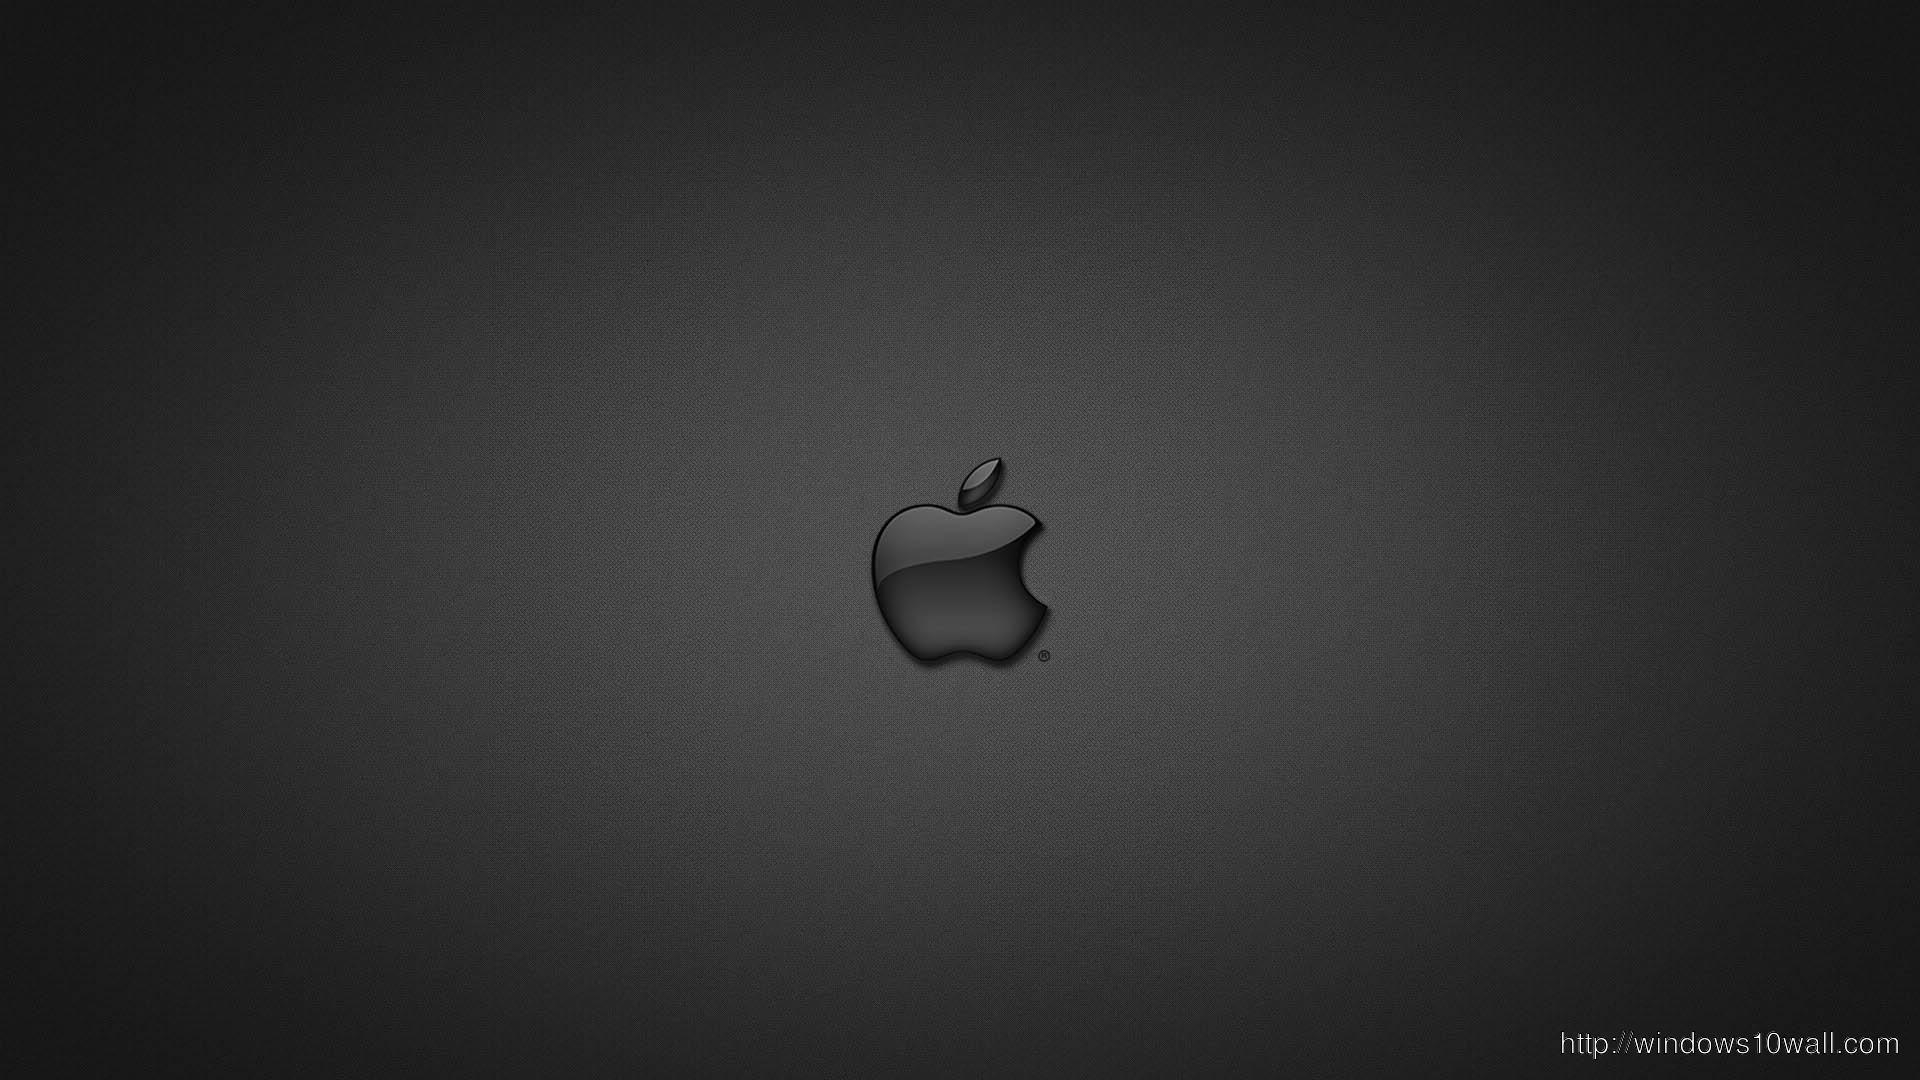 apple-logo-background-hd